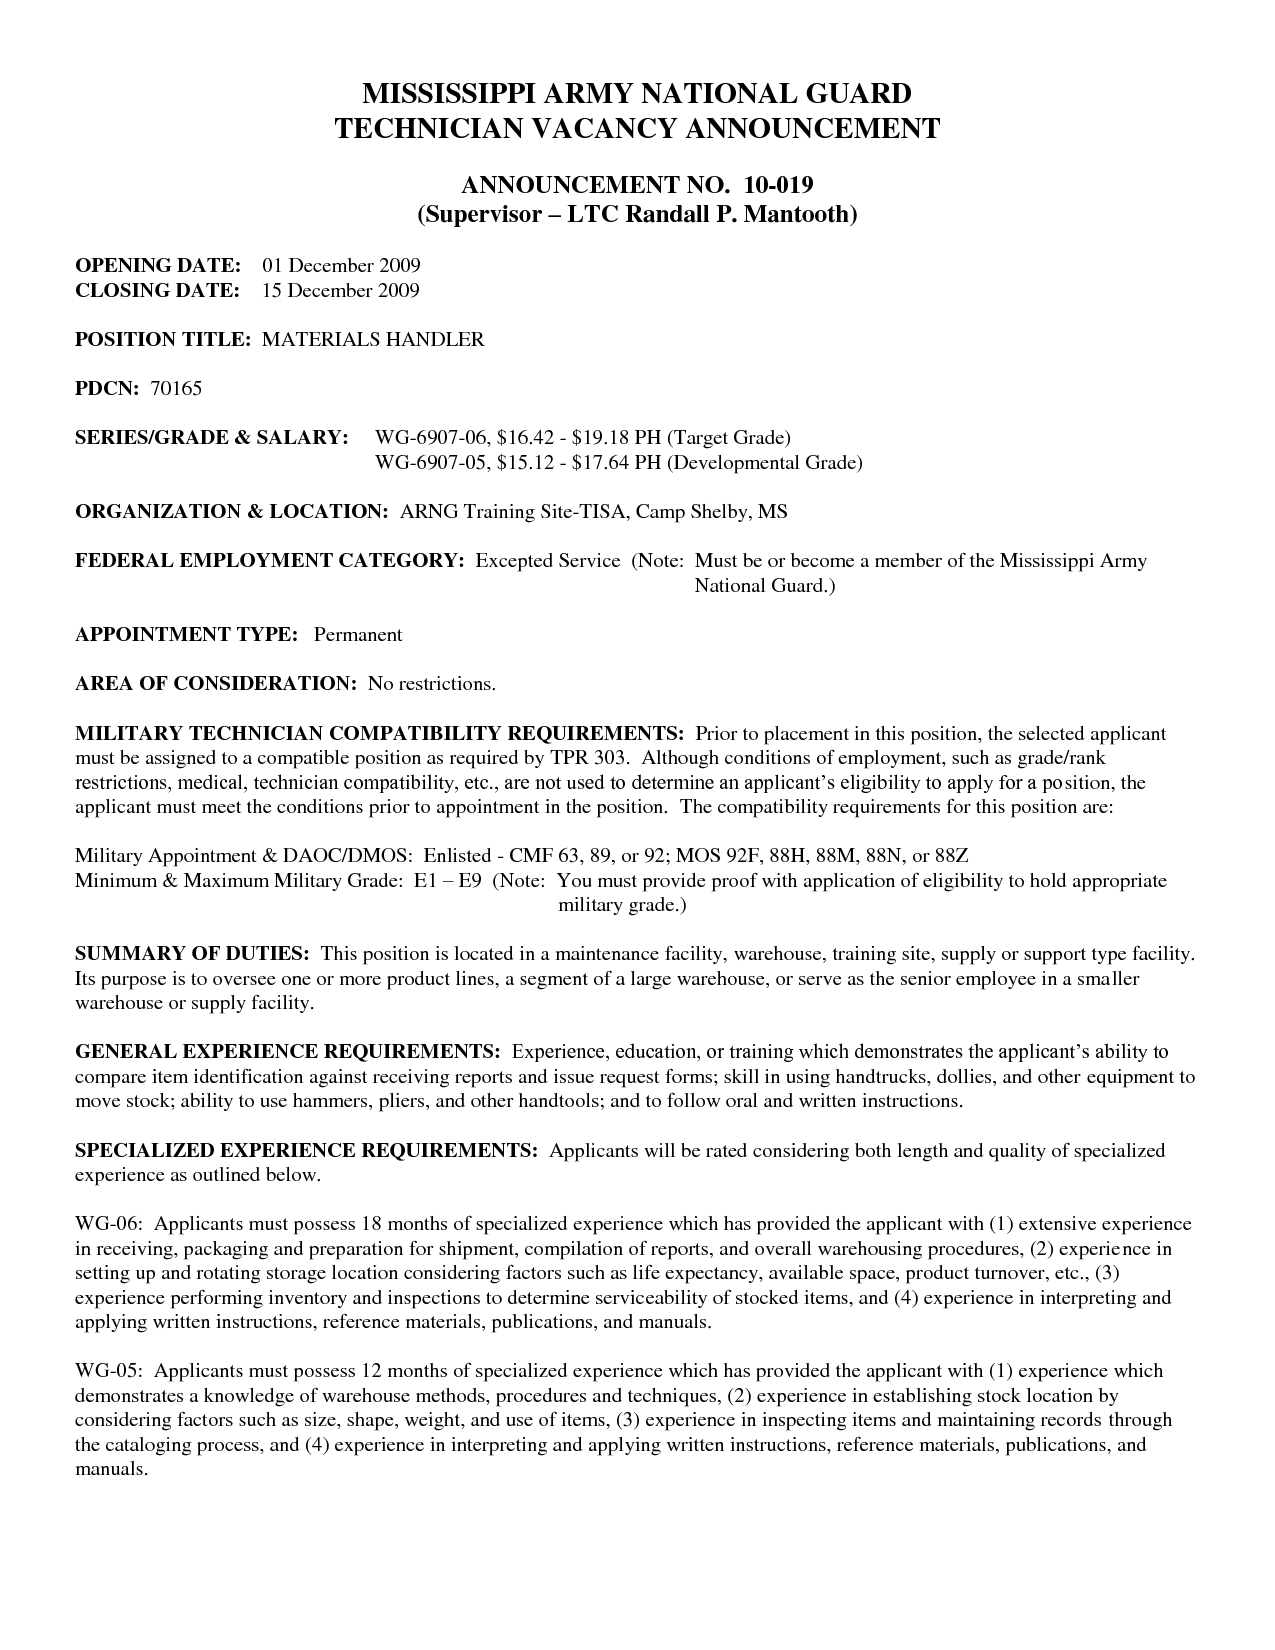 92F Resume Examples Resumeexamples